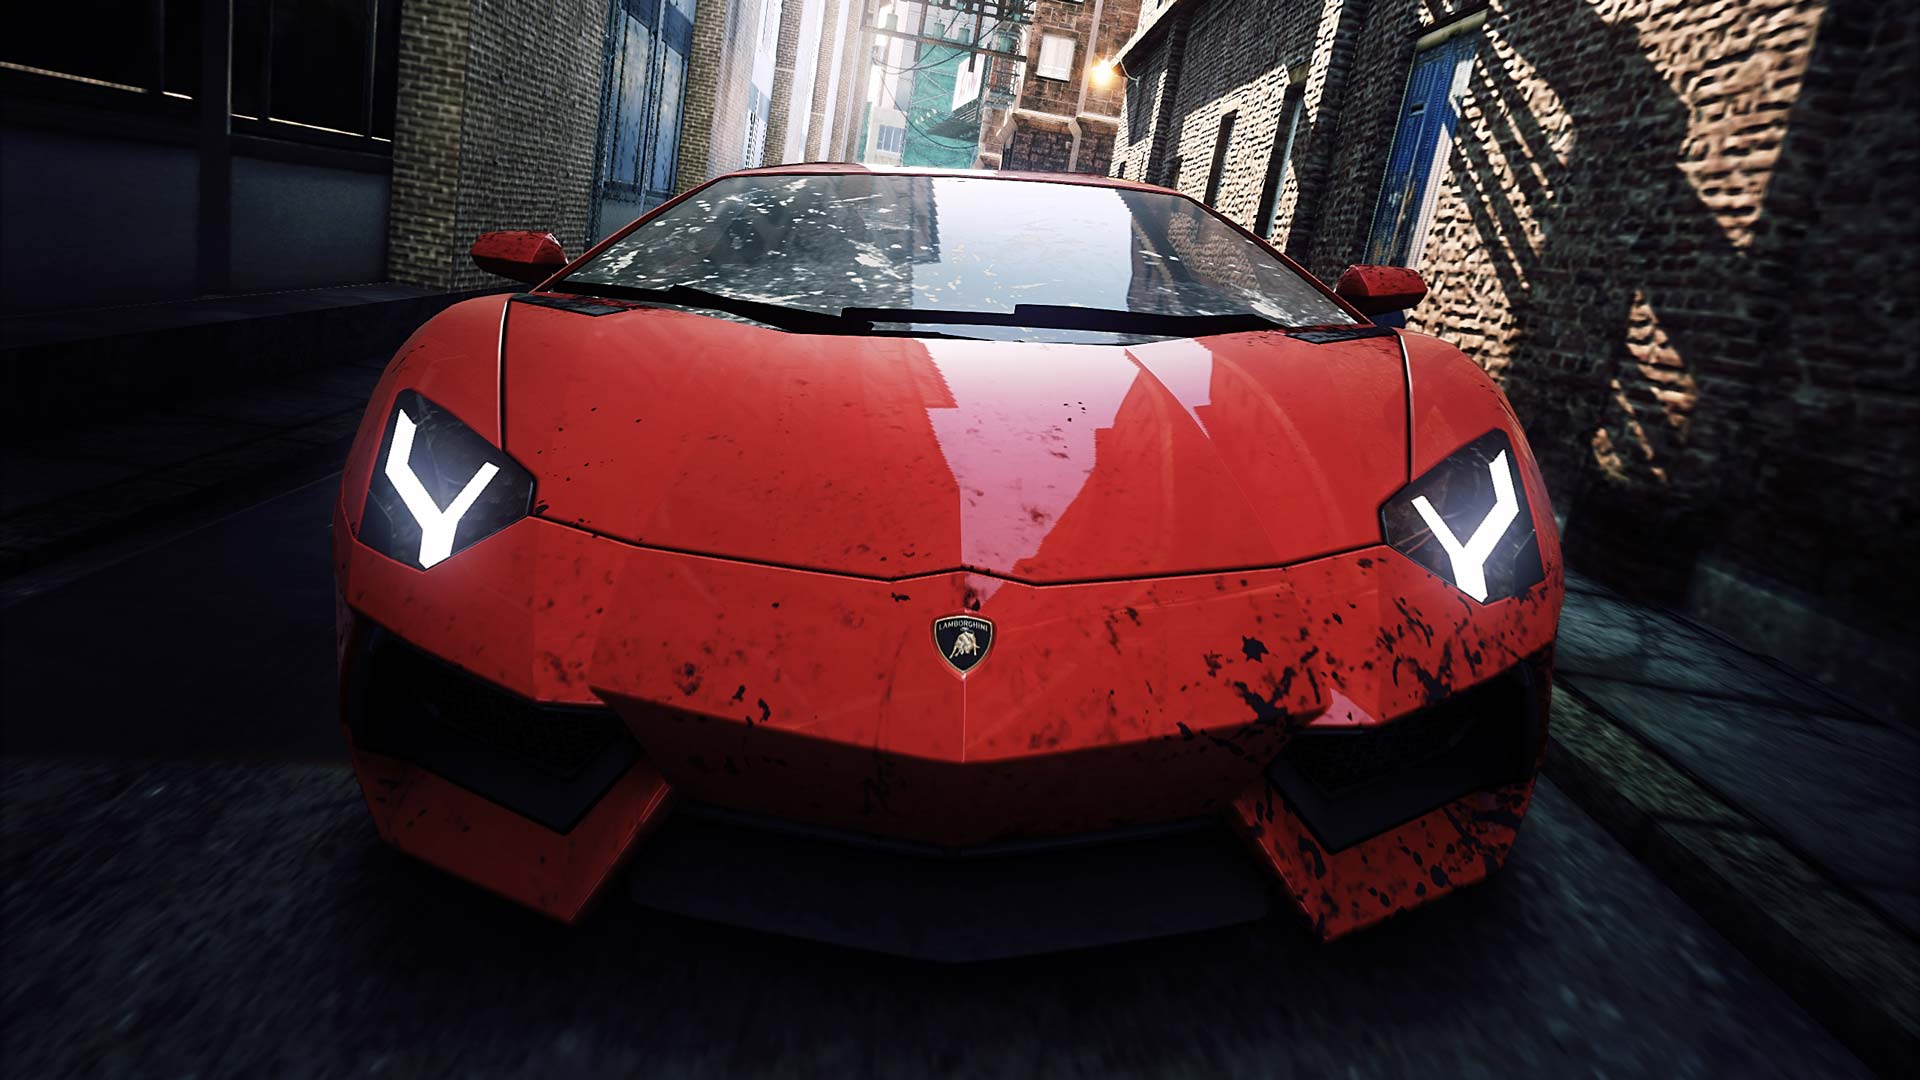 Place 3 out of 10: Need for Speed: Most Wanted